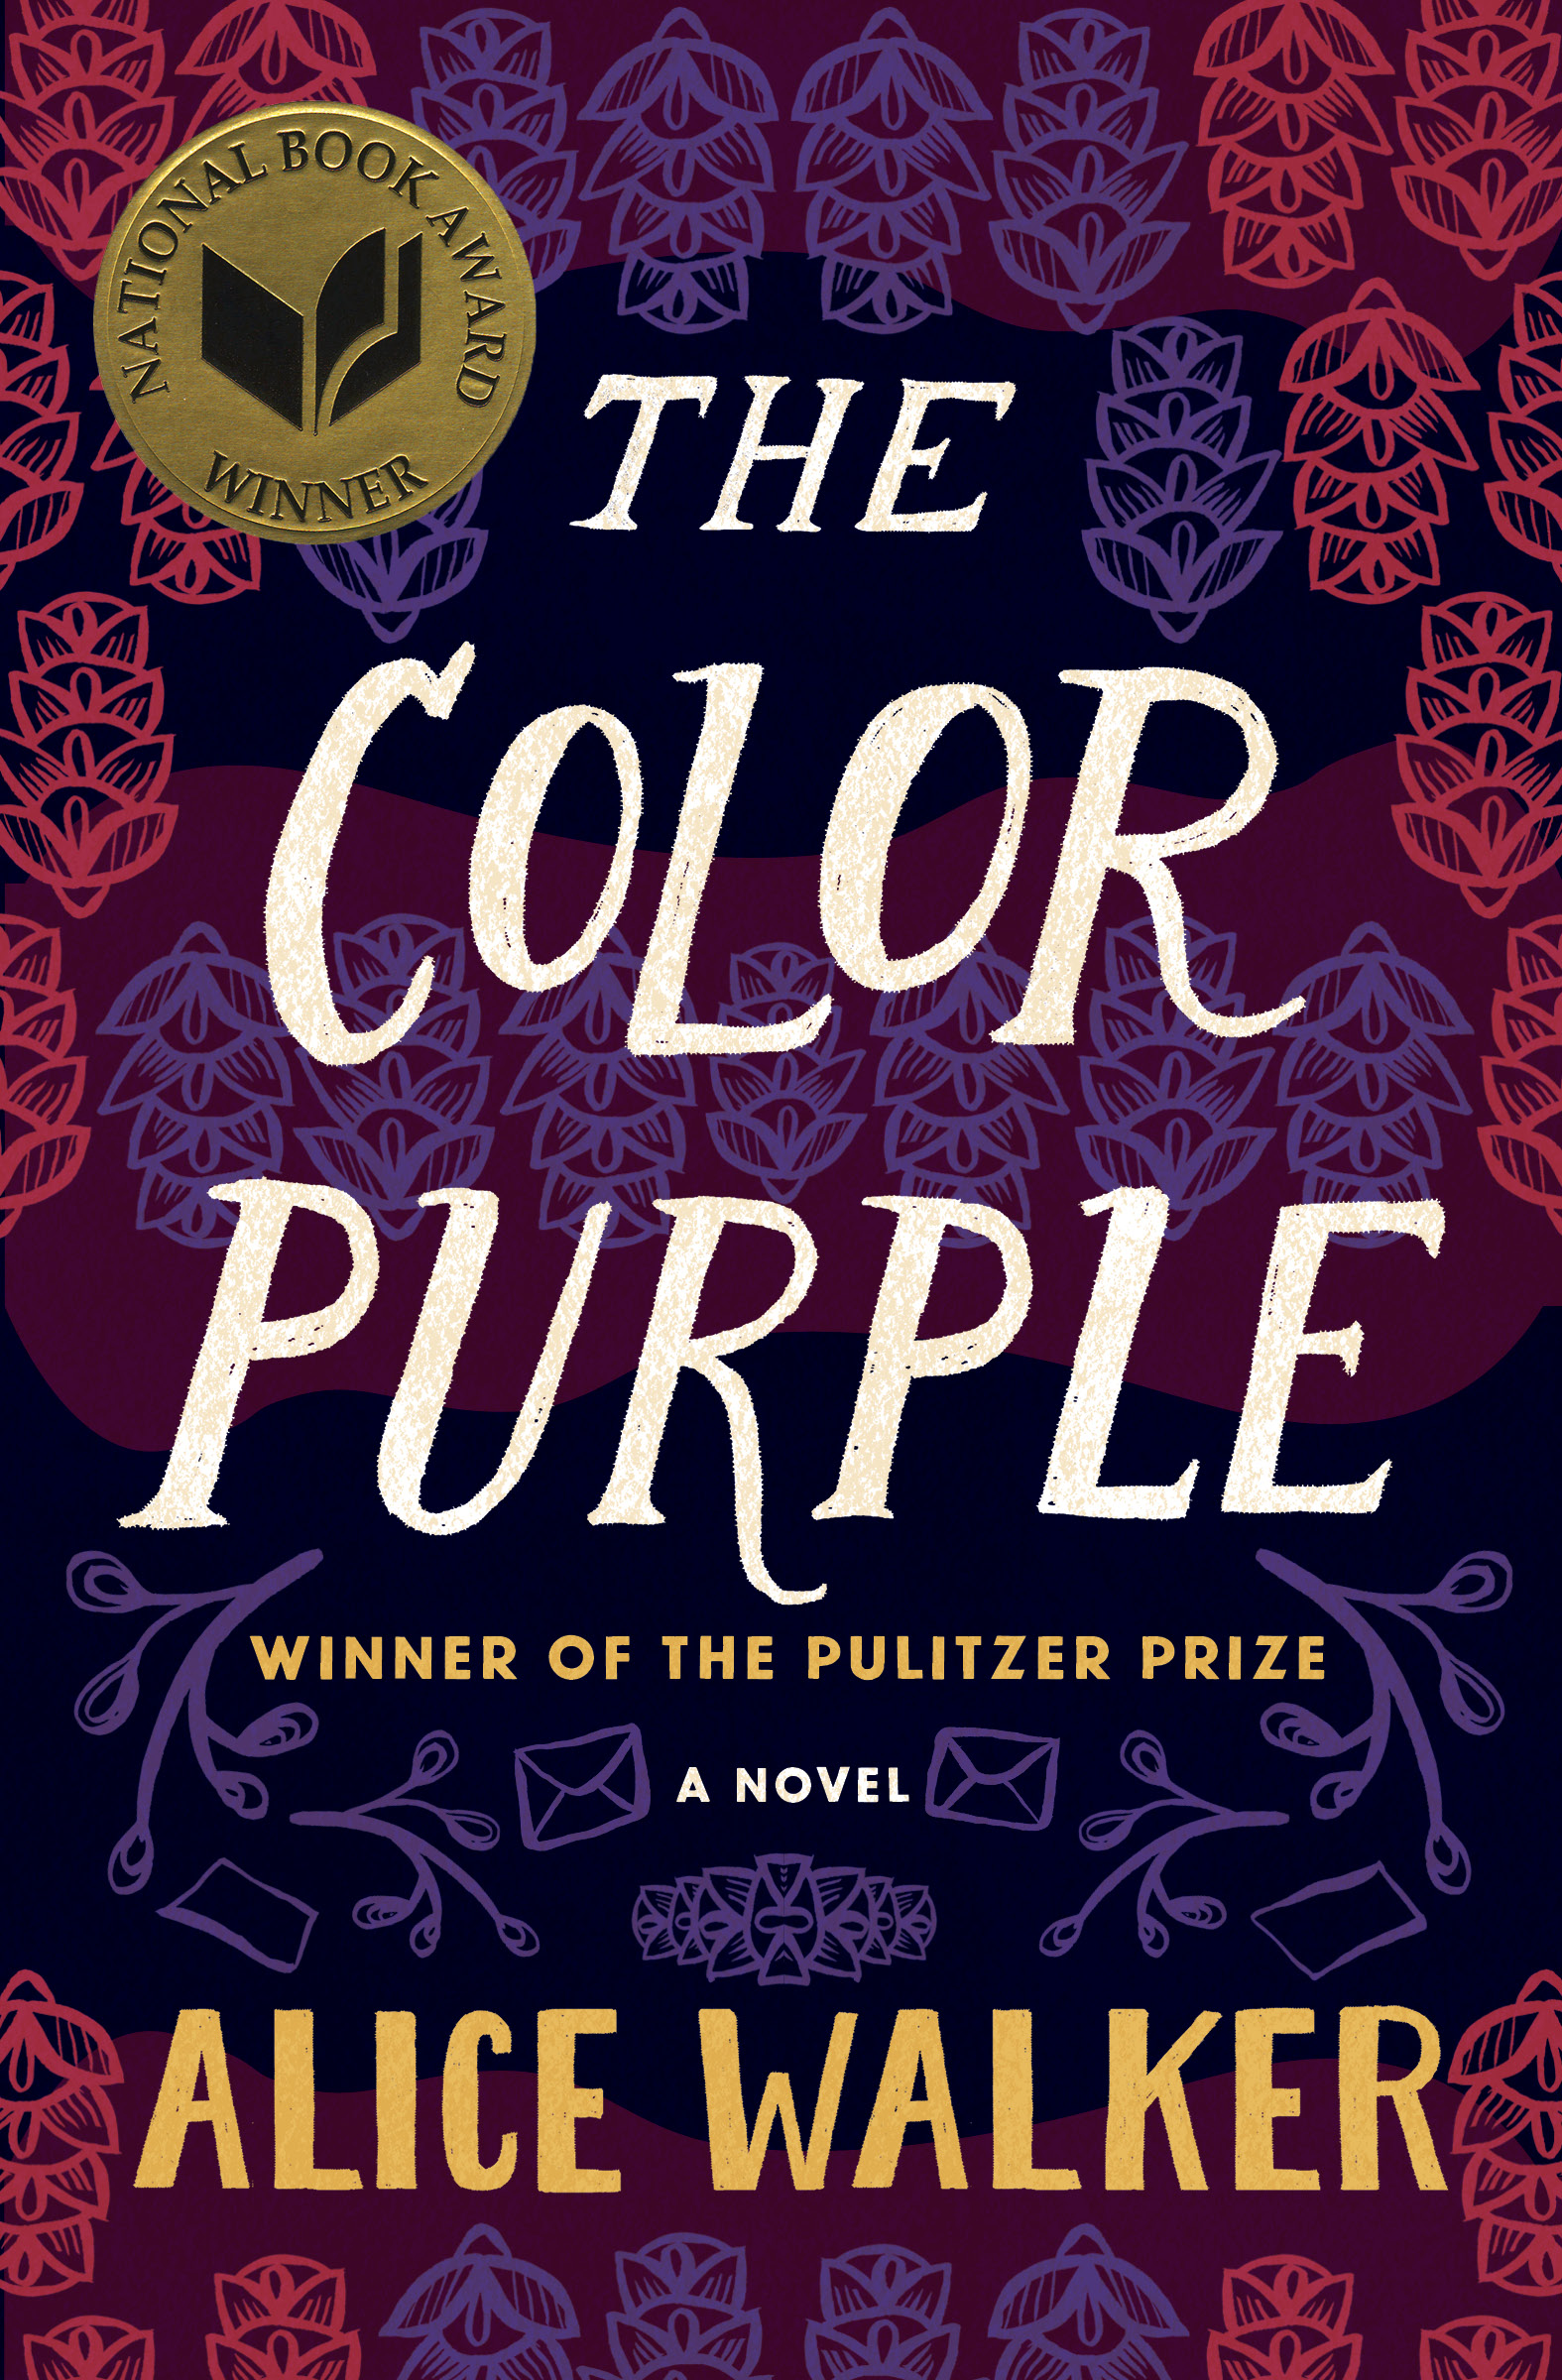 alice walker and critical essay on color purple